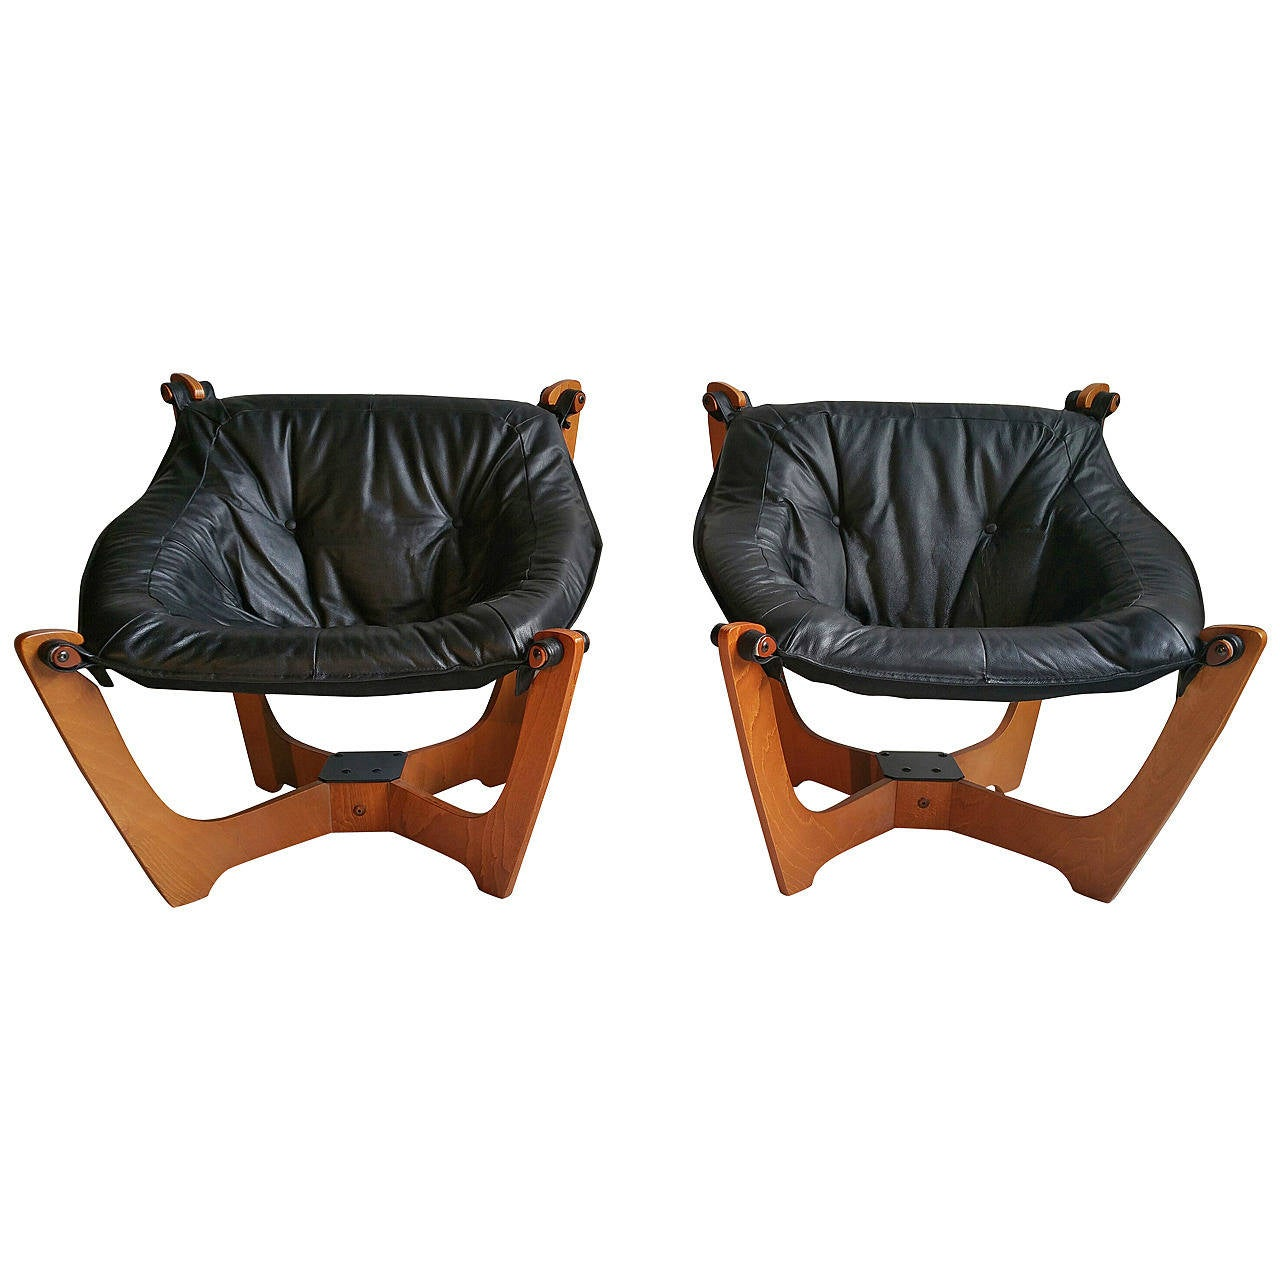 sling chairs for sale plastic sheet under high chair pair of vintage danish mid century modern møbler luna